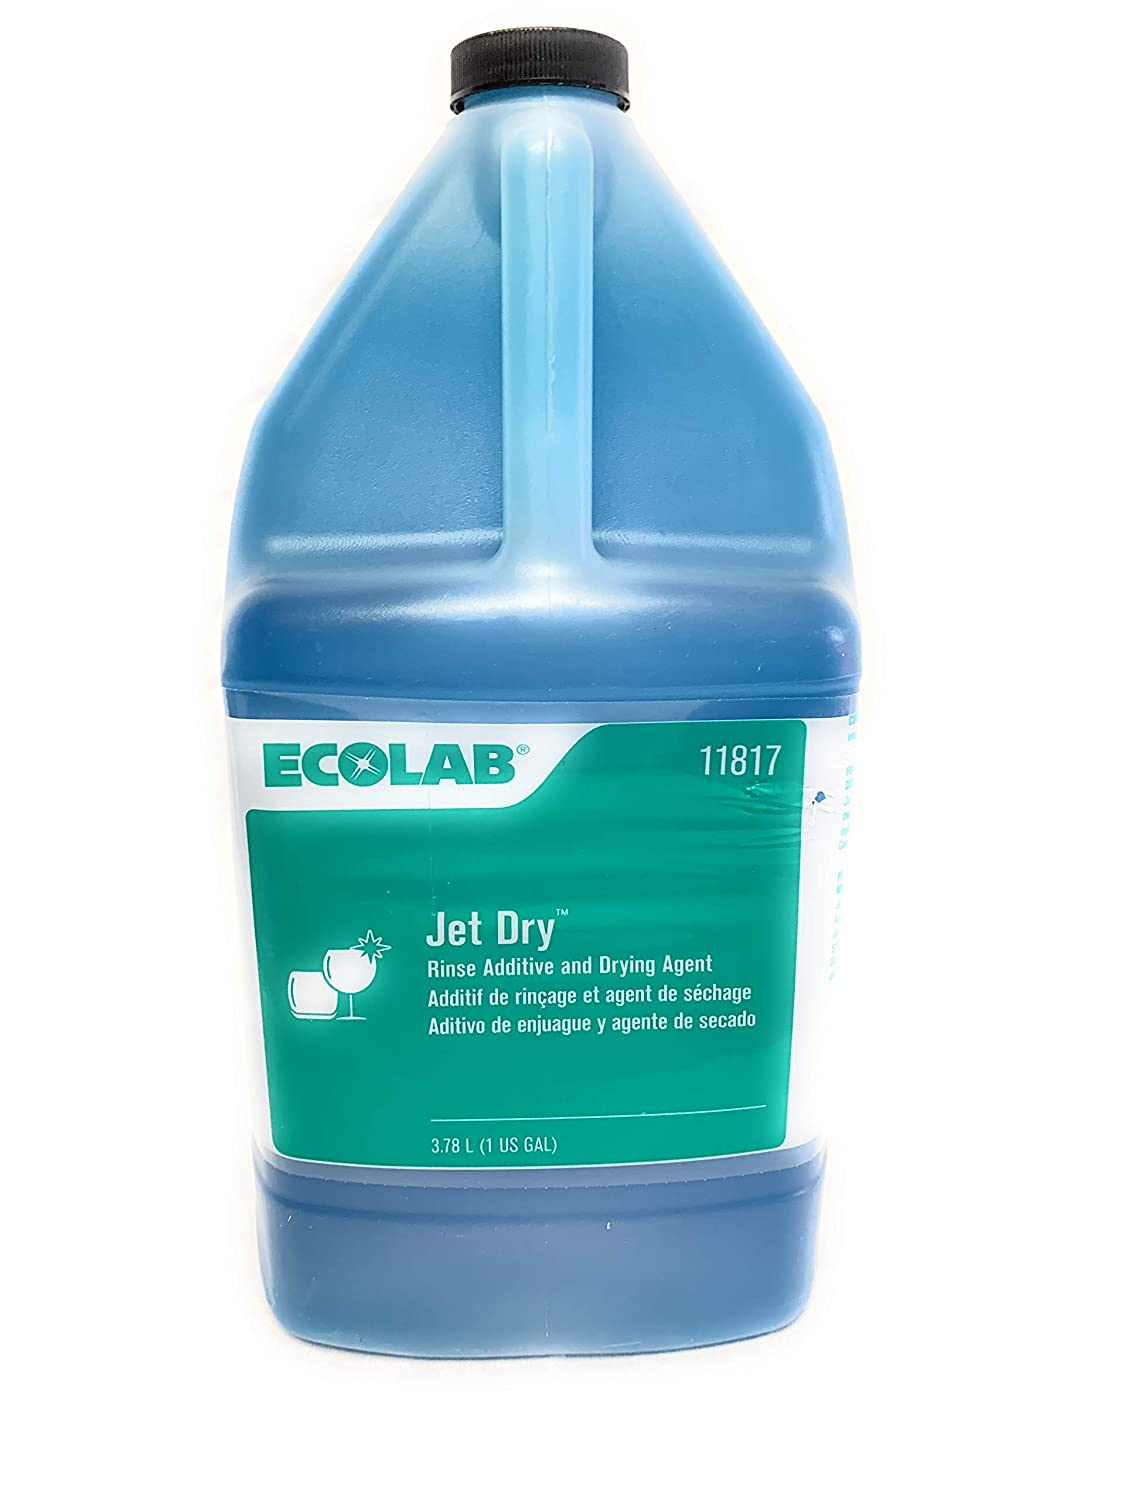 Ecolab JET DRY Dish Washware Rinse Additive Drying Agent - 1 Gallon